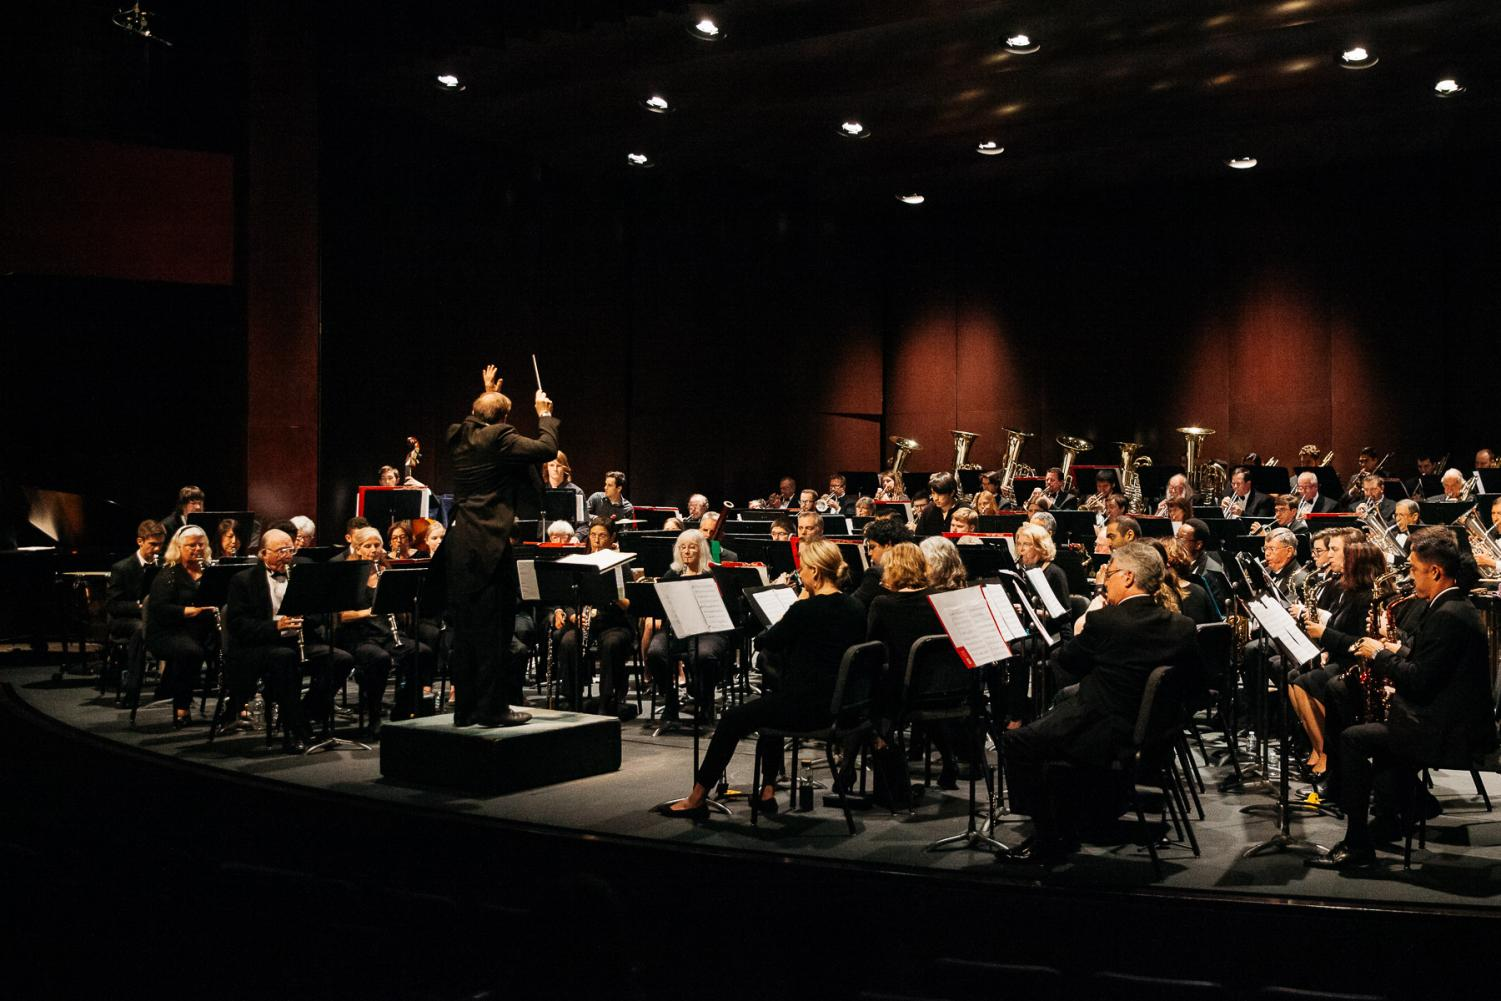 The Santa Barbara City College Concert Band and conductor Eric Heidner play Favorites from 2003-2018 on Sunday, May 5, 2019, at the Garvin Thertre at City College in Santa Barbara, Calif. The band consisted of 99 musicians including Heidner.